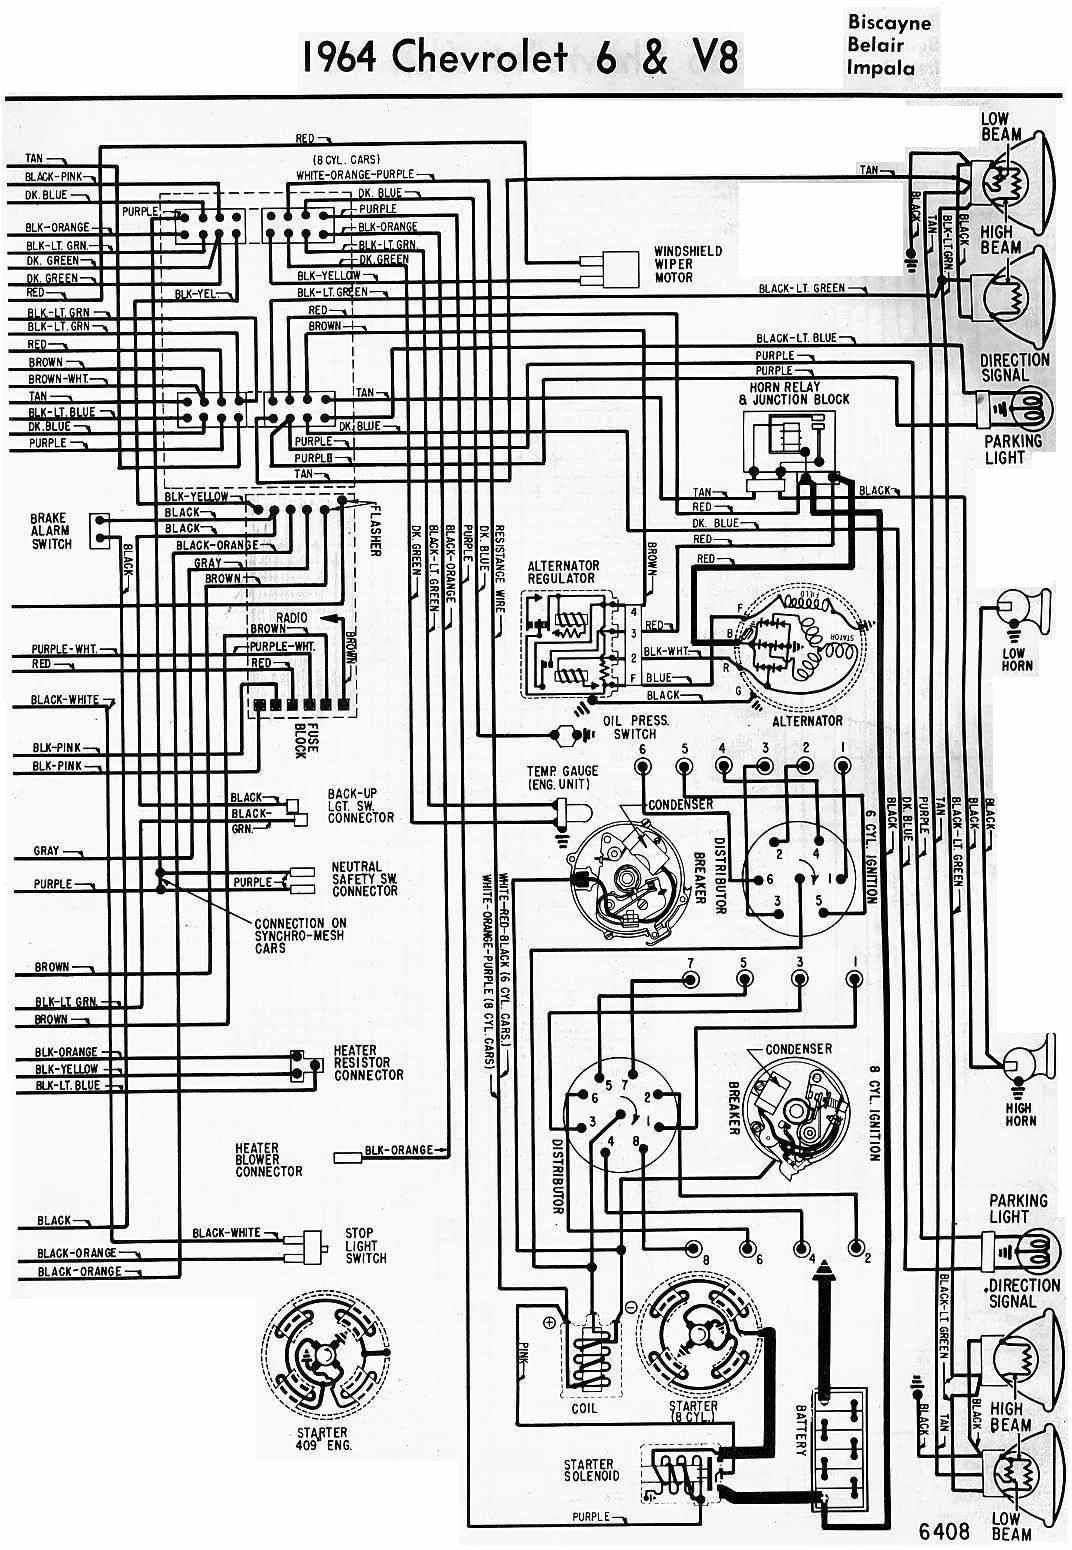 hight resolution of 1964 impala ac wiring diagram simple wiring diagrams rh 30 studio011 de 2006 impala wiring diagram 2007 chevy impala ignition wiring diagram